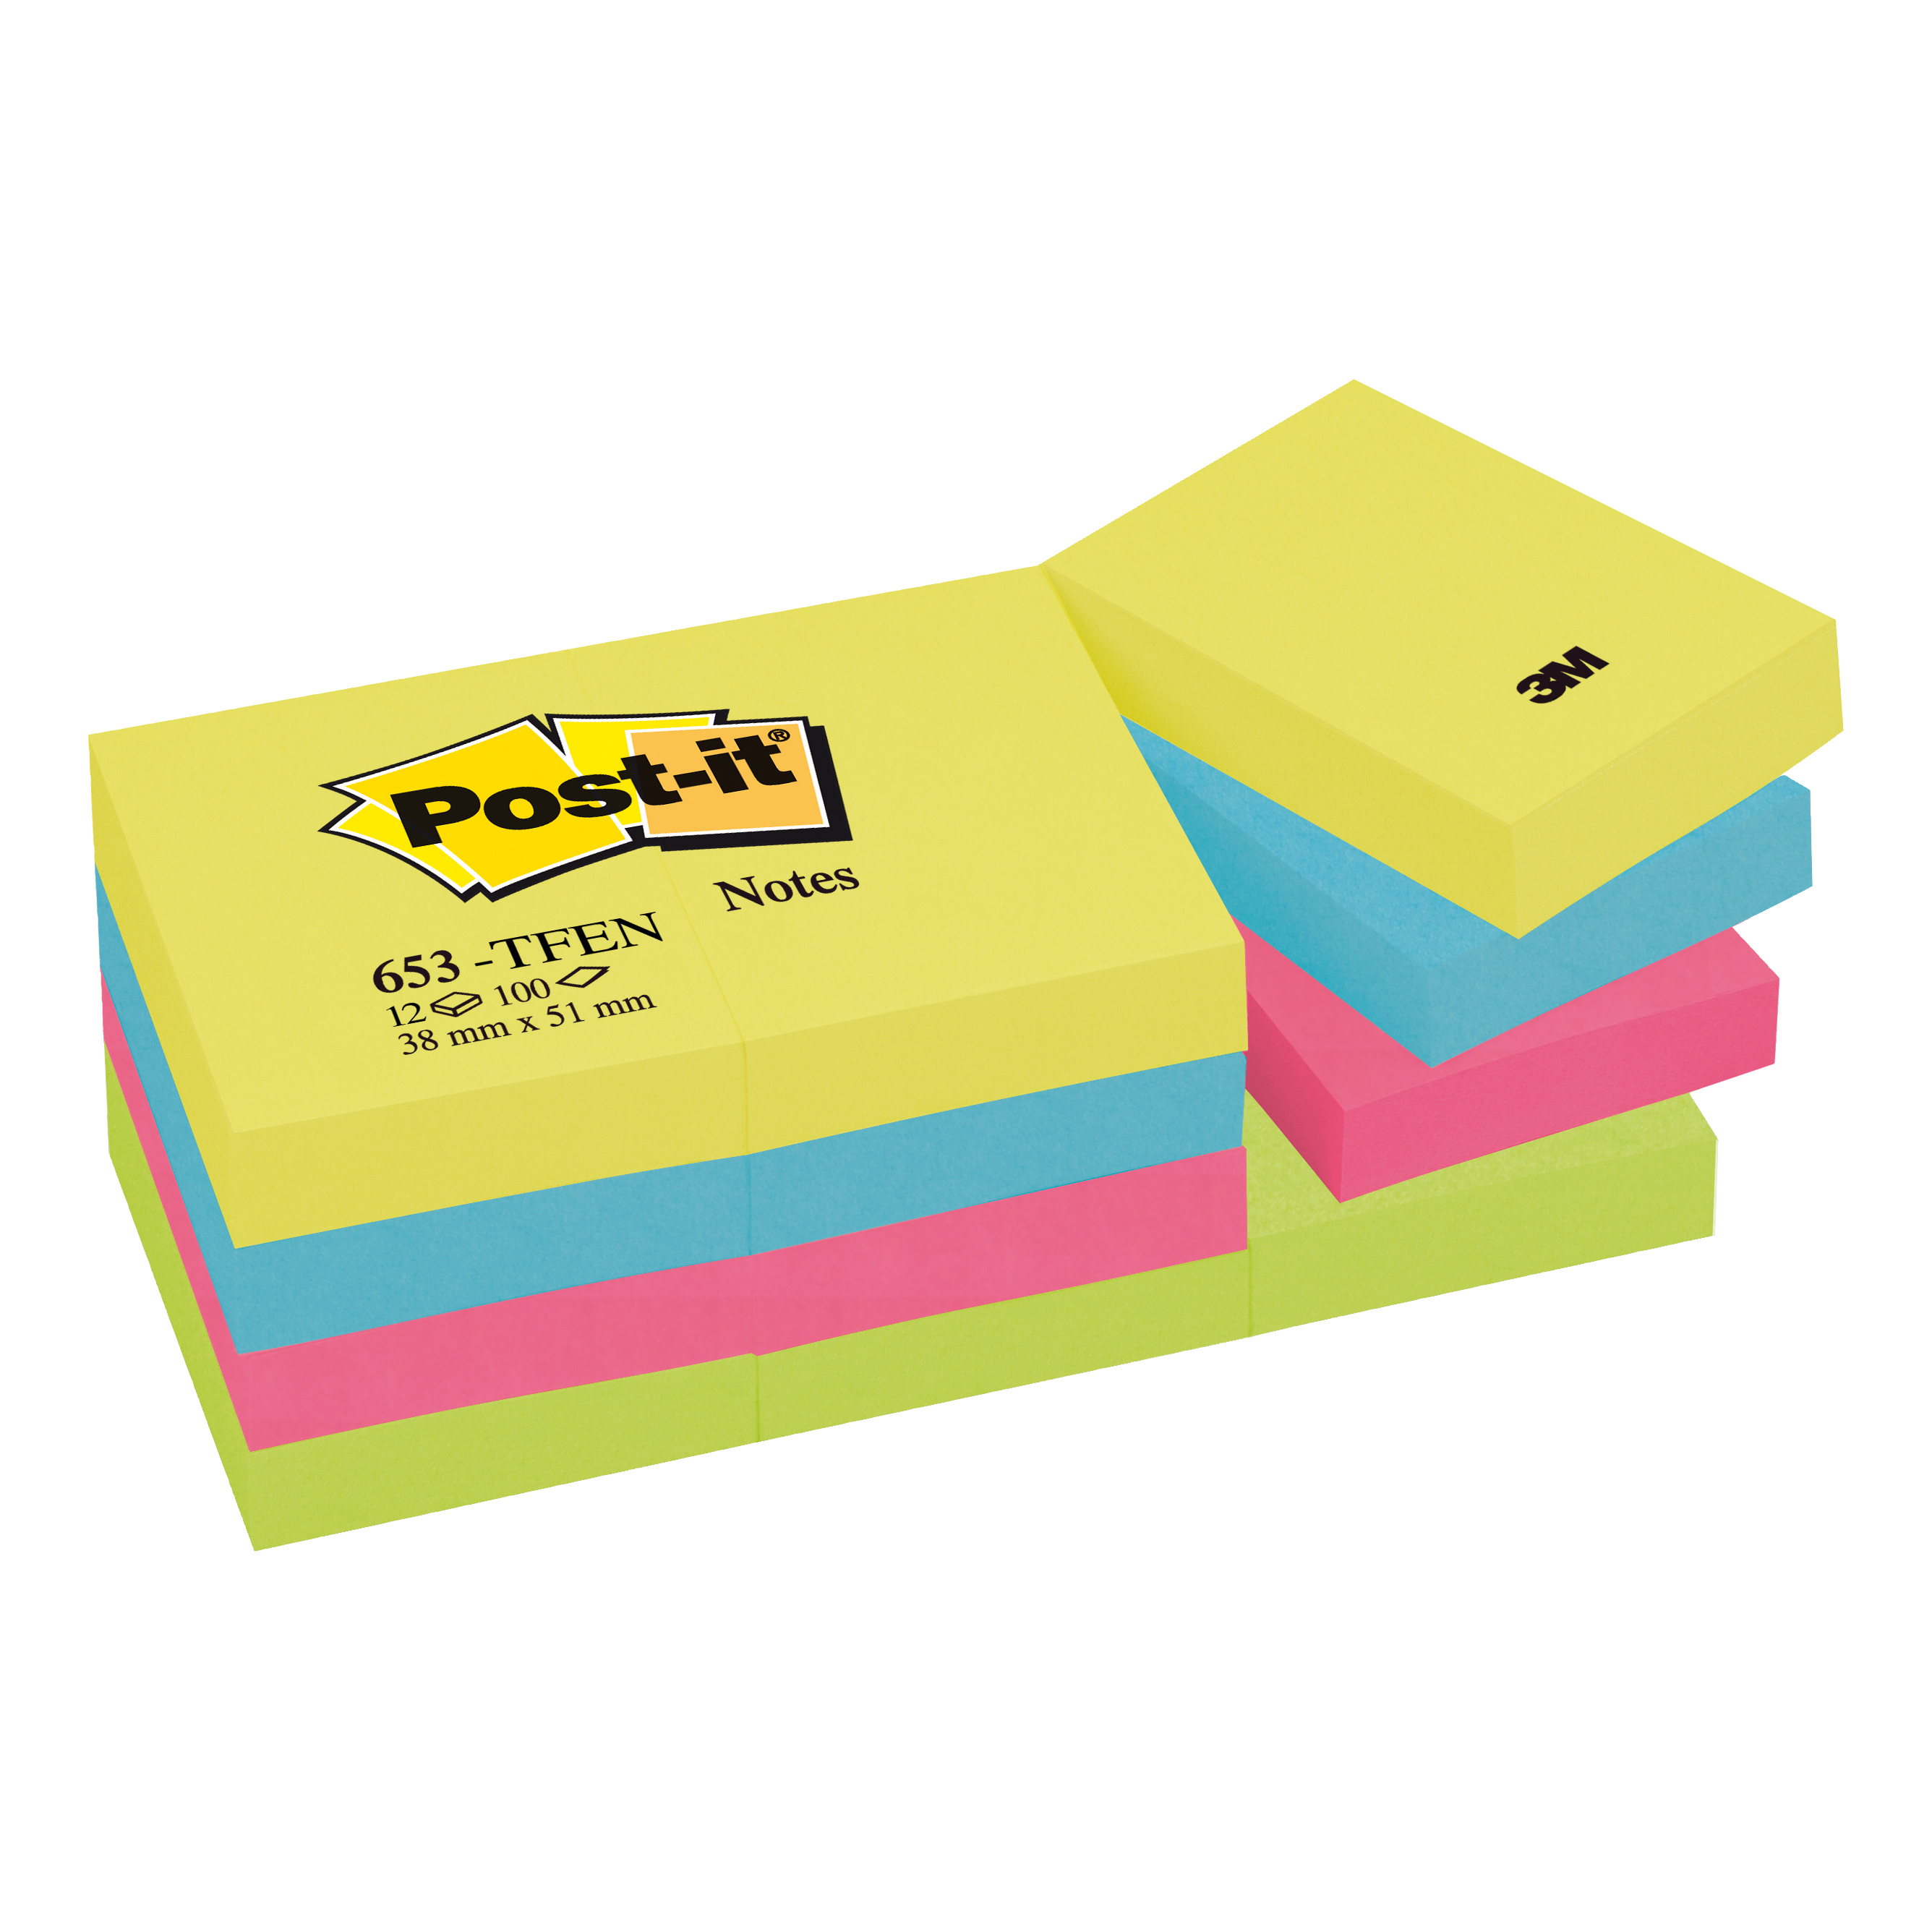 Post-it Colour Notes Pad of 100 Sheets 38x51mm Energetic Palette Rainbow Colours Ref 653TF [Pack 12]